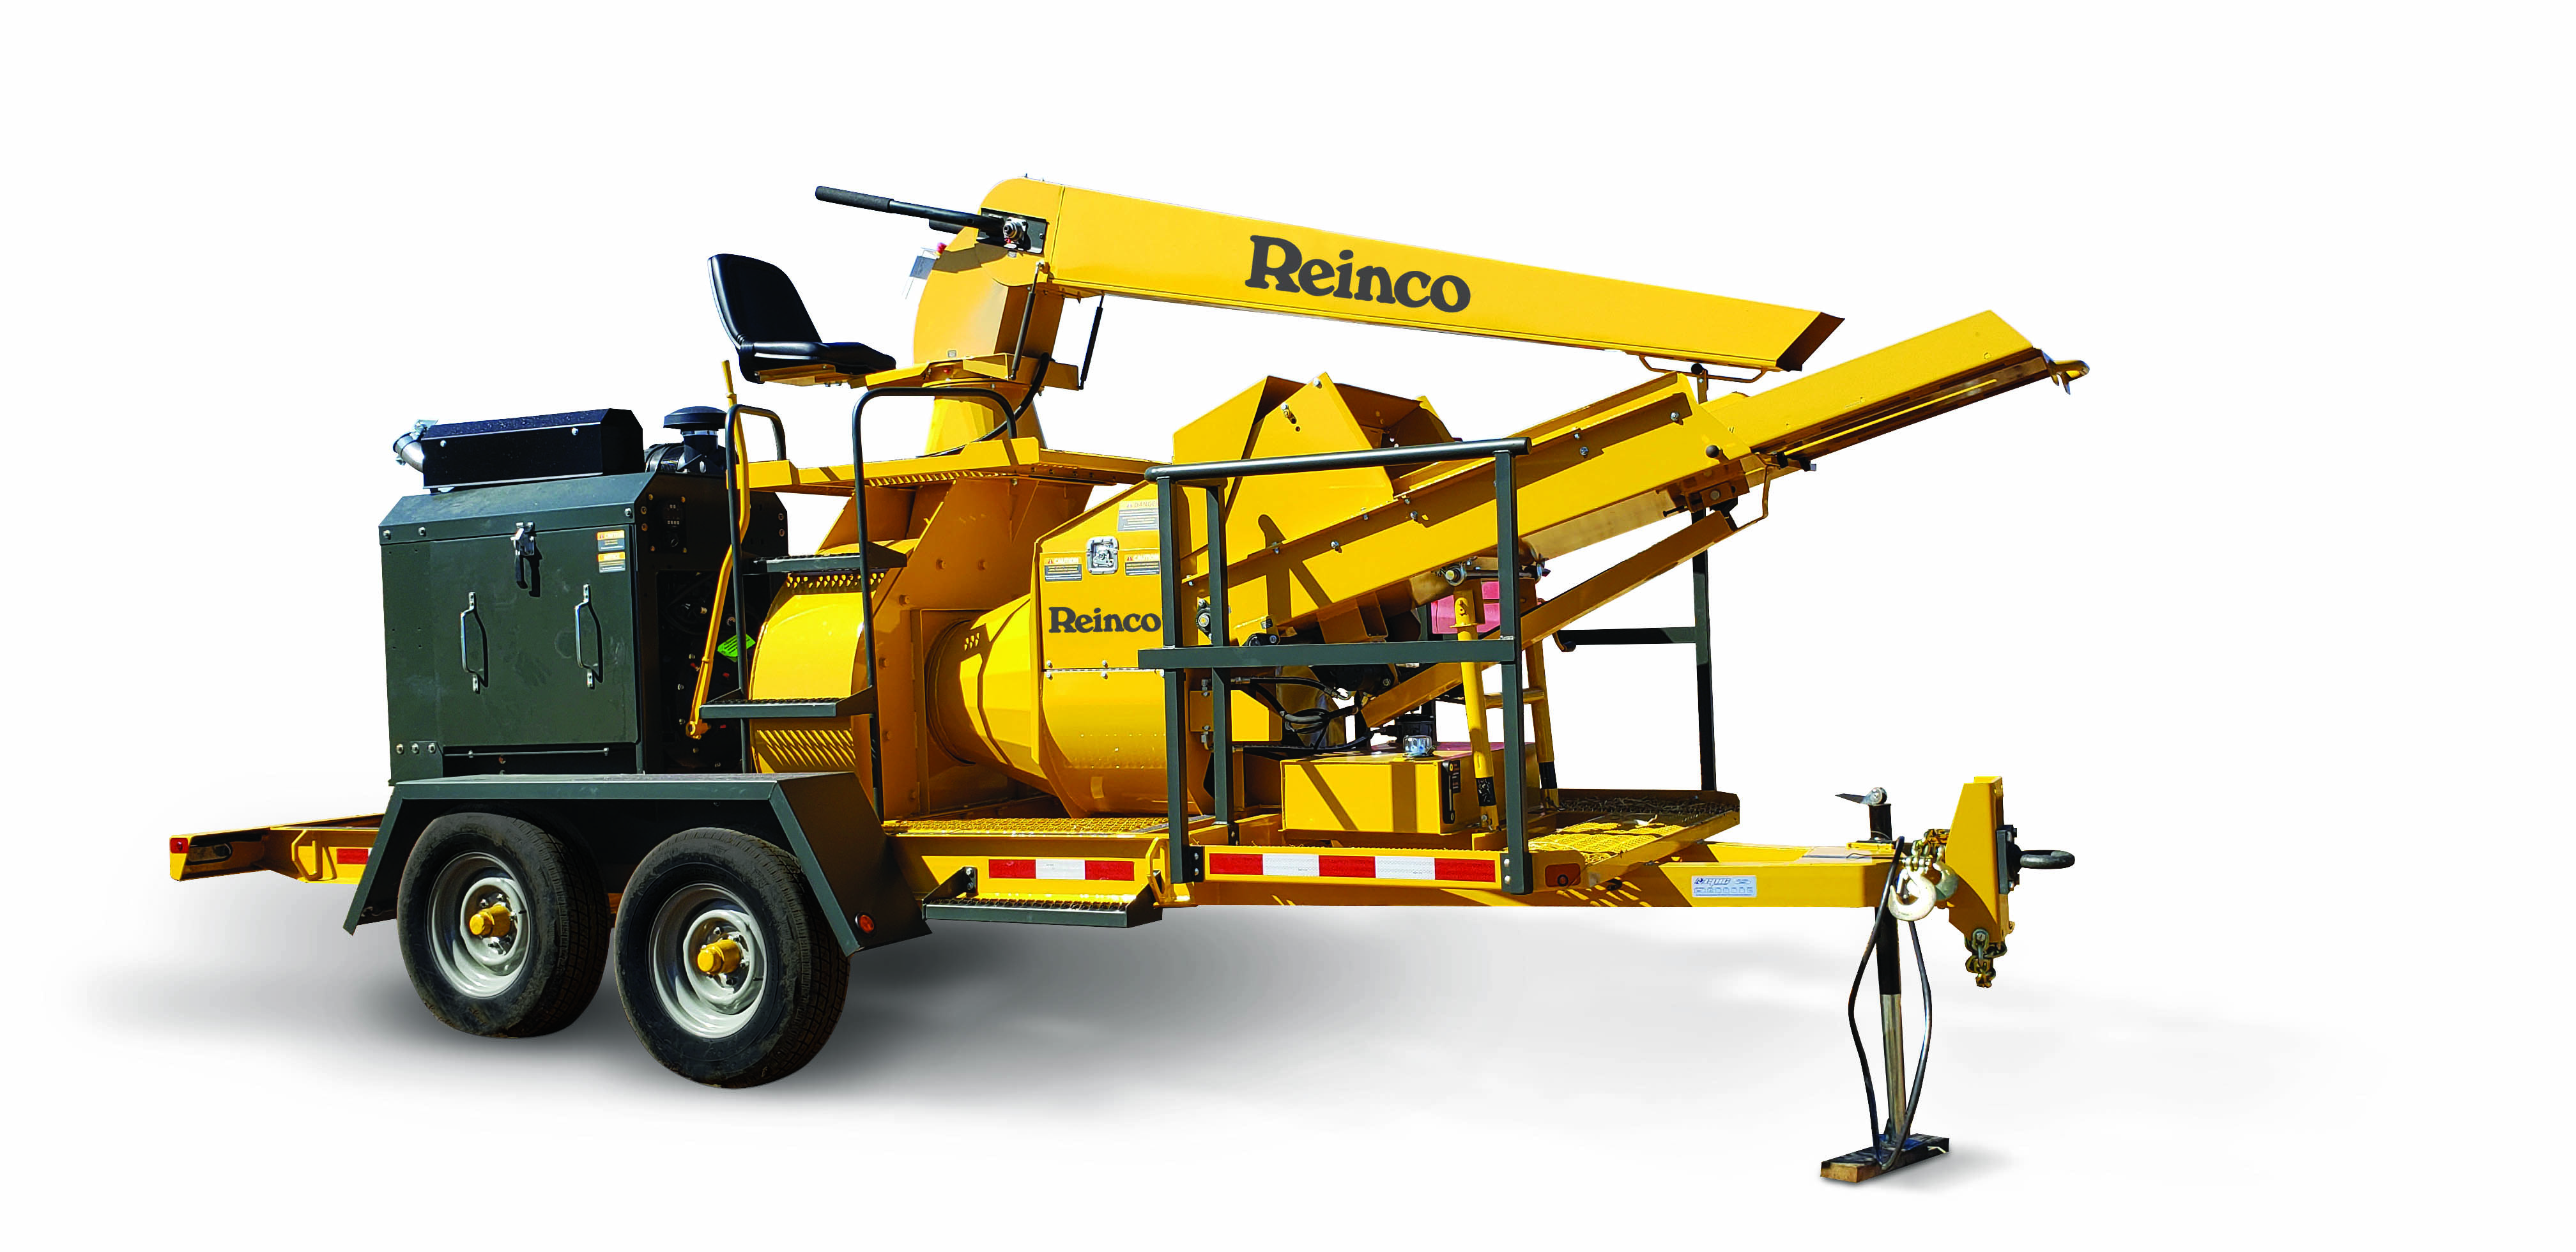 208_reinco-m90 Landscaper Series Hydroseeders | Jet Agitation | Epic Manufacturing